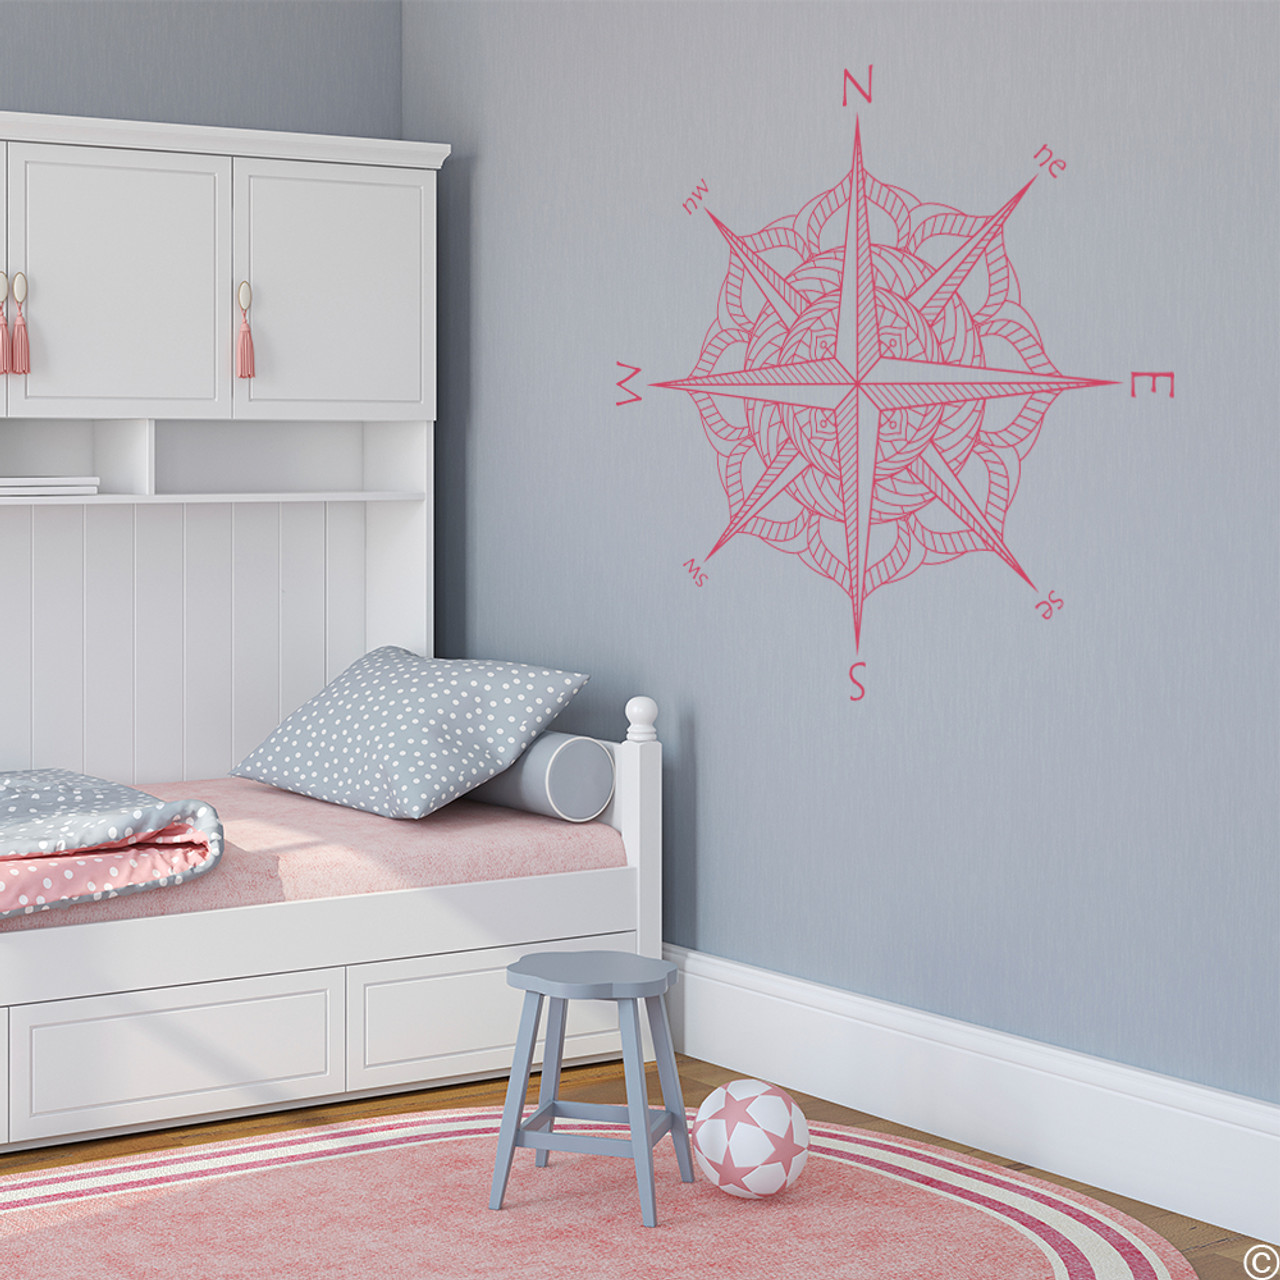 The Catalina compass rose wall or ceiling decal in lipstick